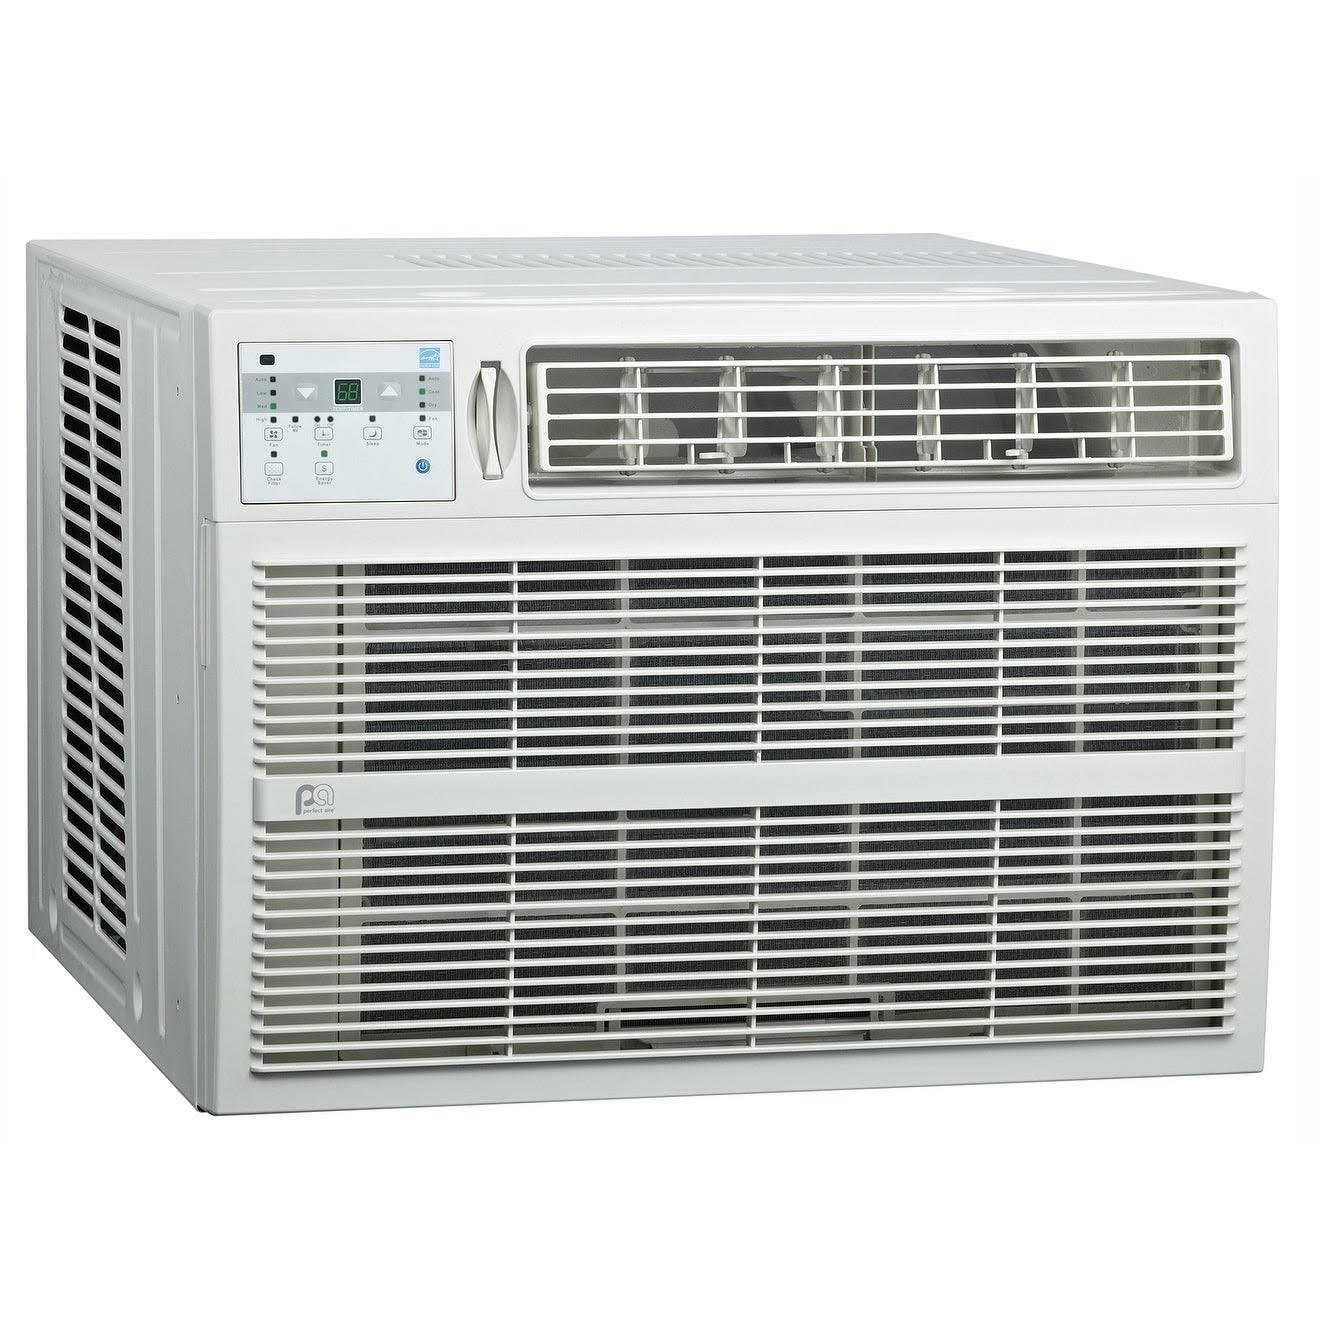 Perfect Aire 15,000 BTU Window Air Conditioner